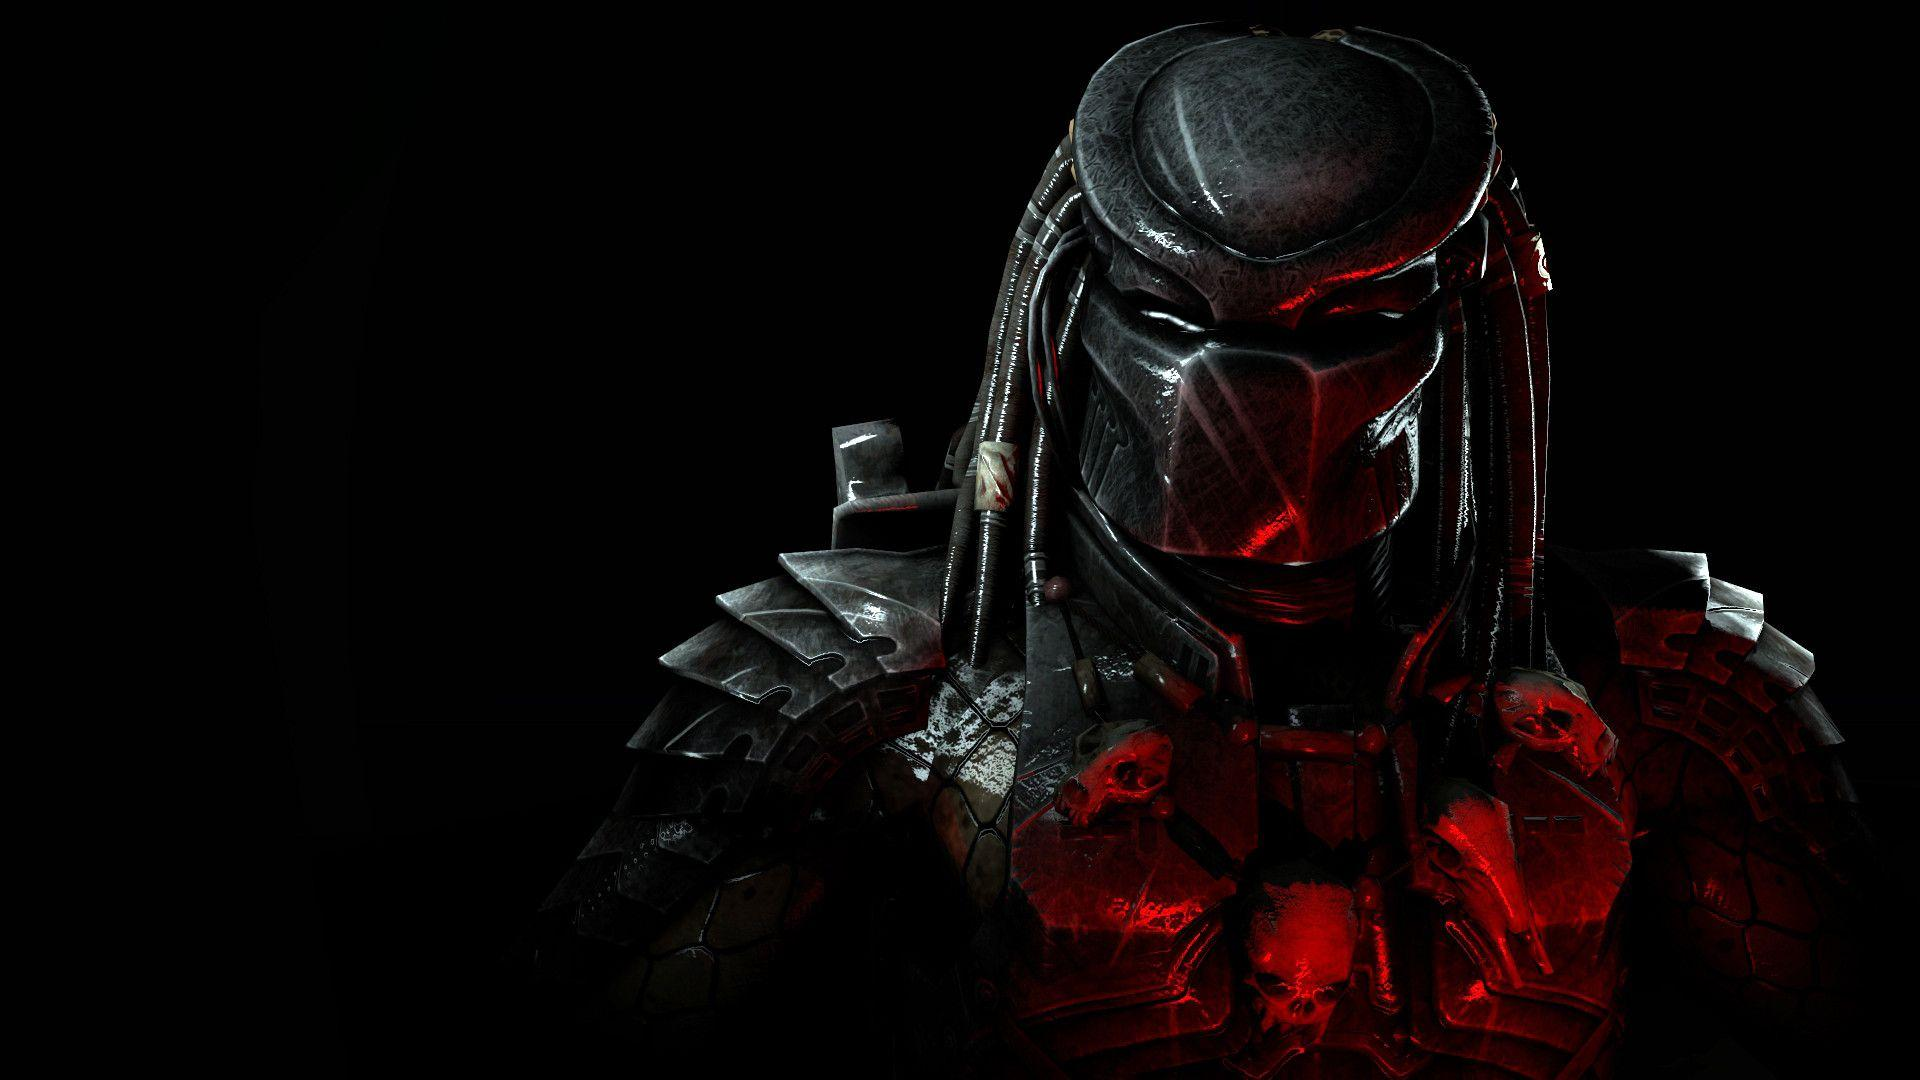 Predator Wallpapers Hd 1920x1080 Wallpaper Cave